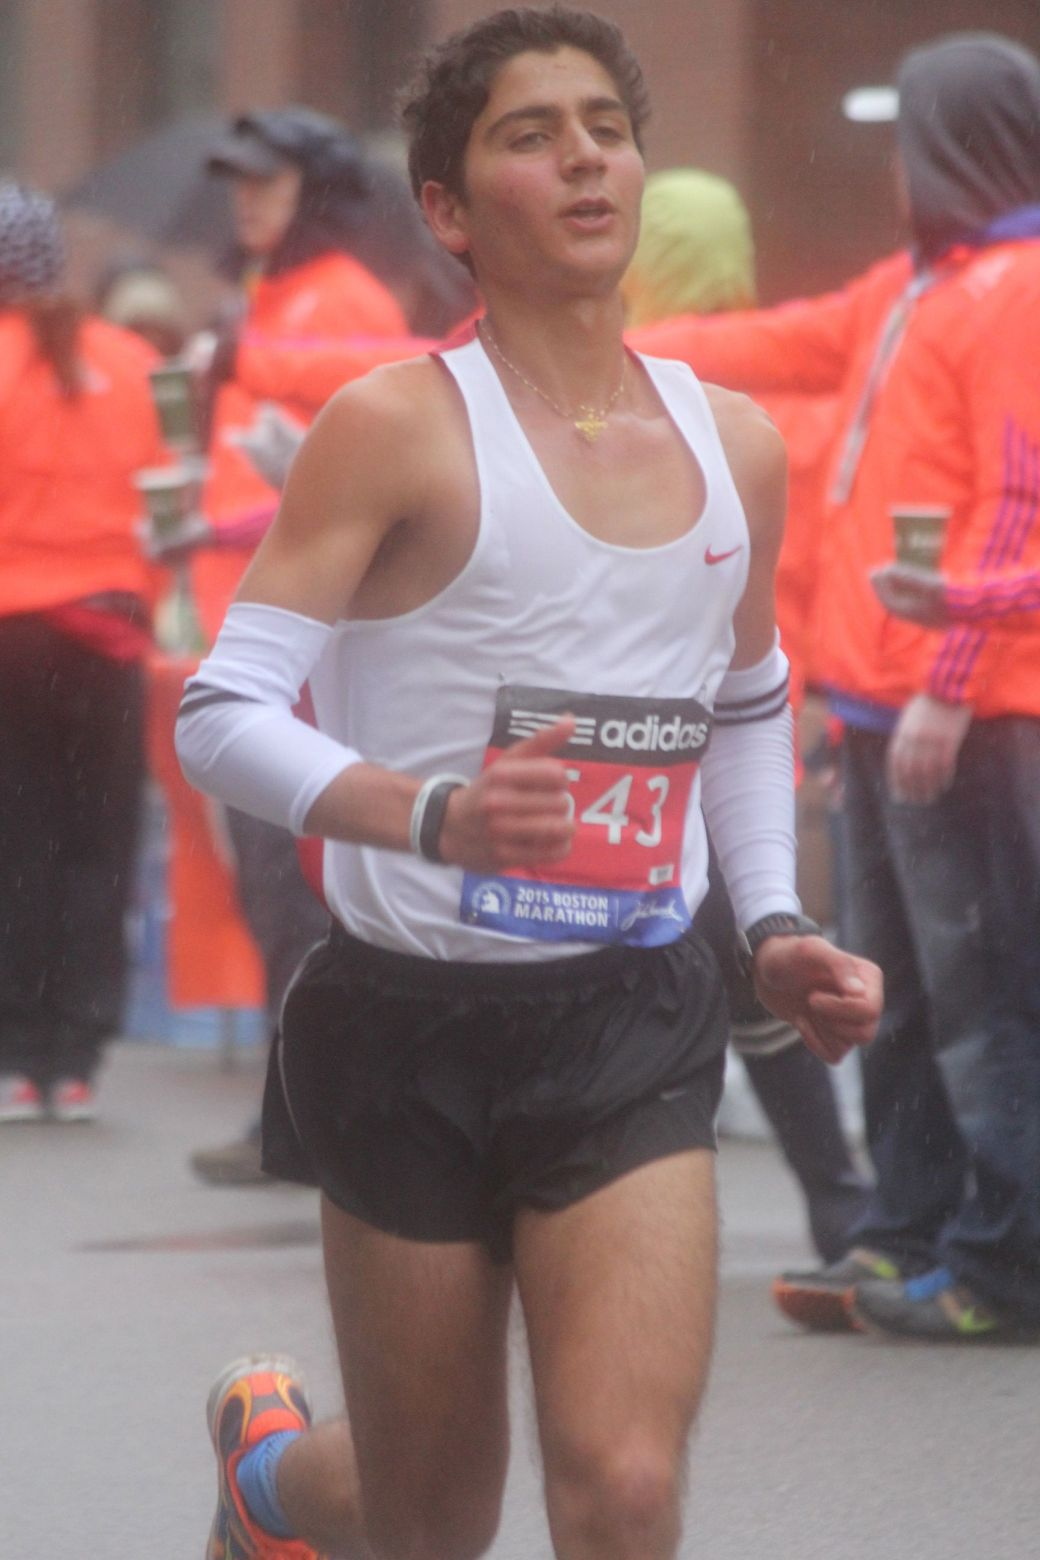 boston marathon april 20 2015 racer number 543